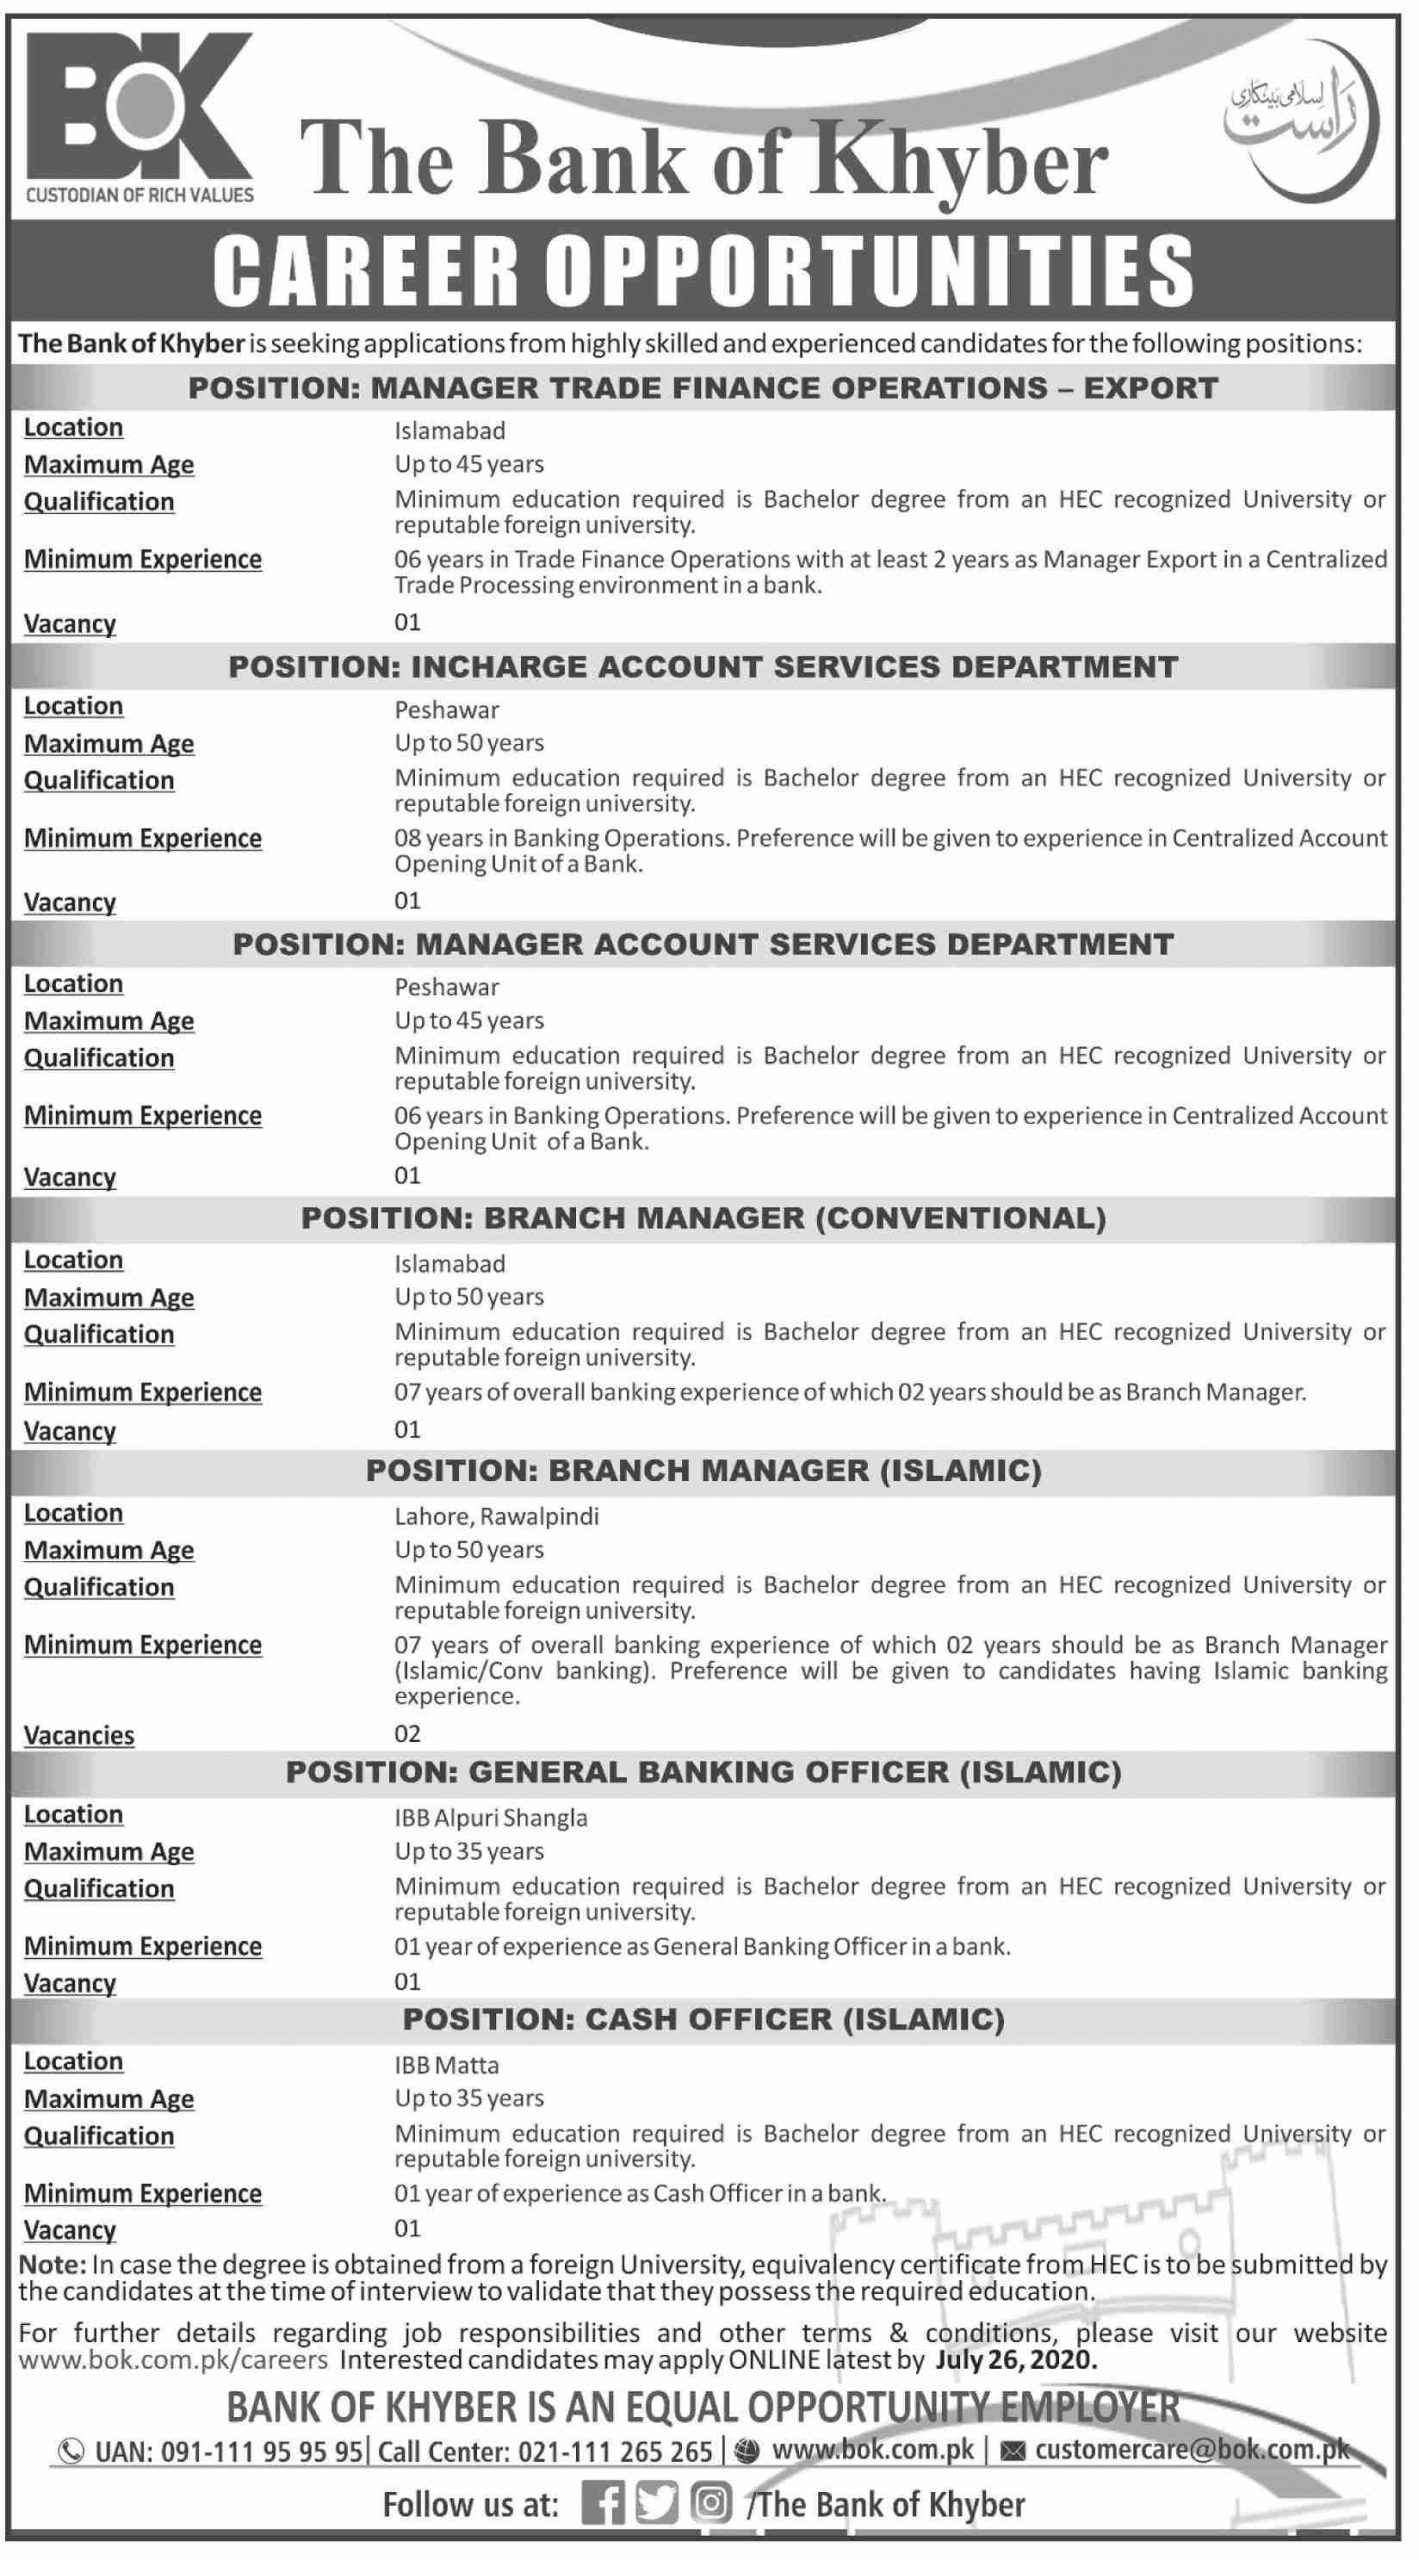 The Bank of Khyber BOK Jobs June 2020